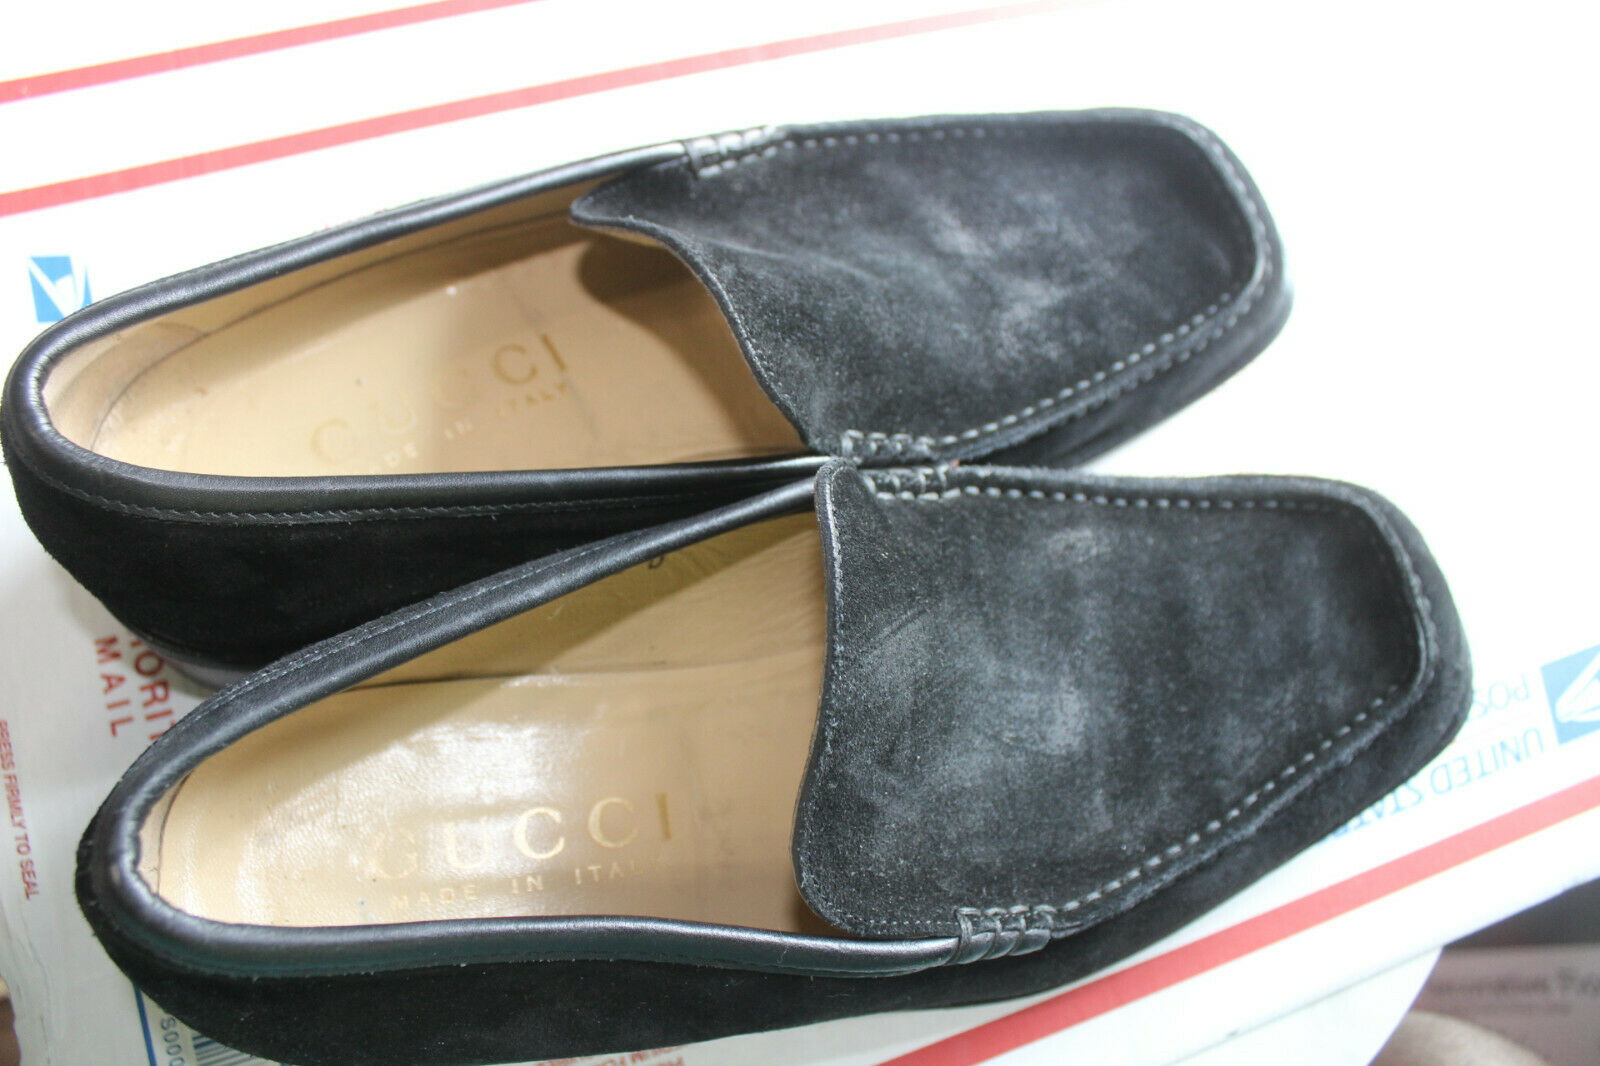 GUCCI MEN'S BLACK SUEDE LEATHER  LOAFERS SIZE  10 - image 11